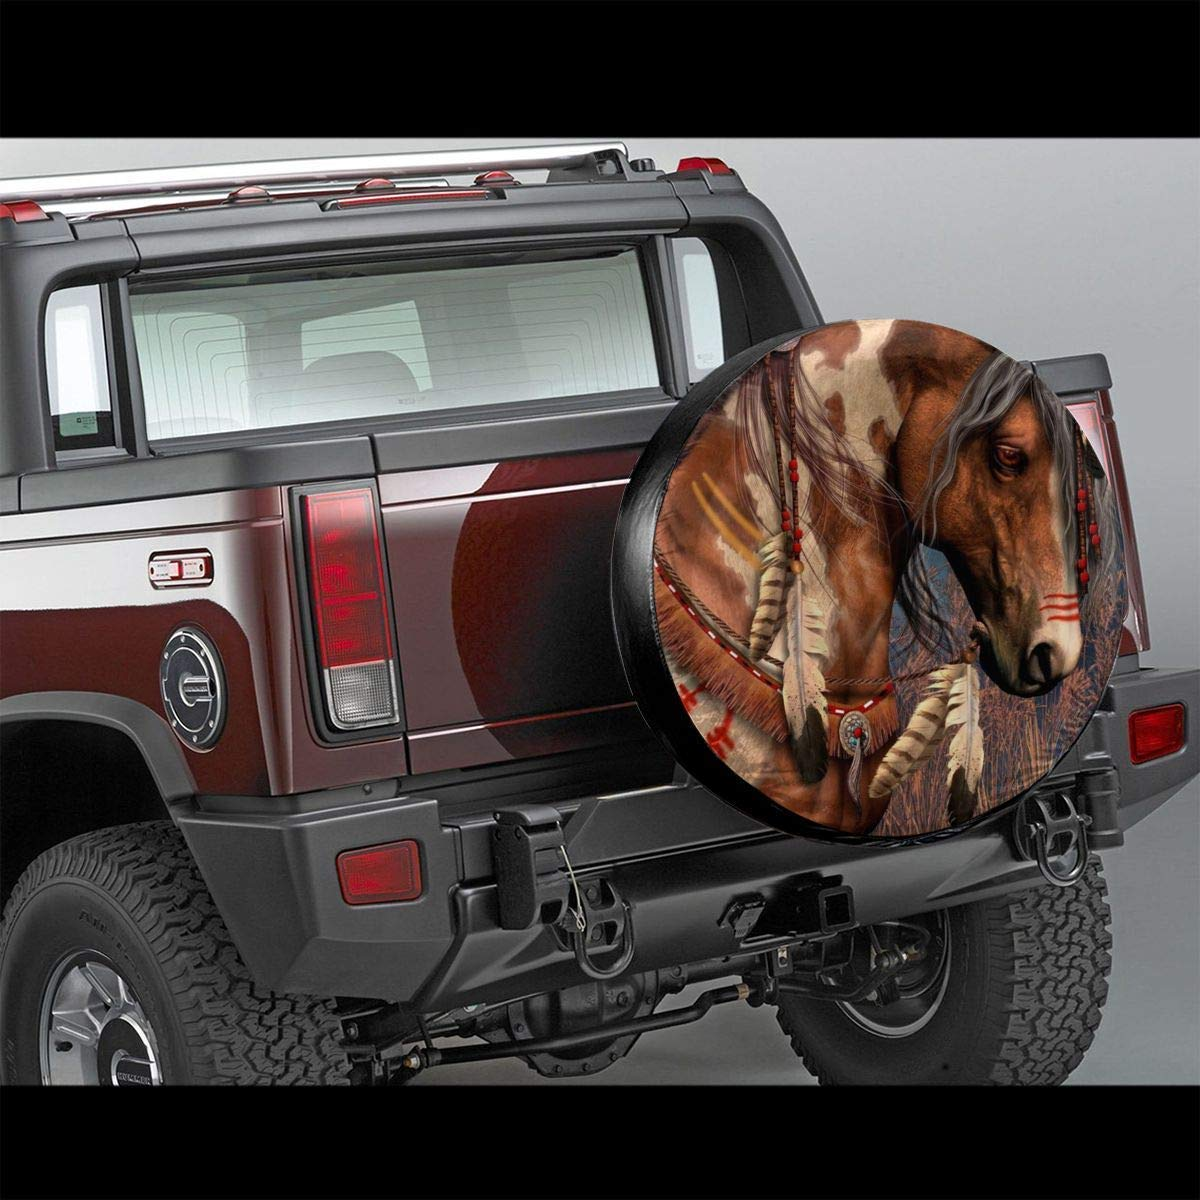 Spirit Indian War Horse Potable Polyester Universal Spare Wheel Tire Cover Wheel Covers Jeep Trailer RV SUV Truck Camper Travel Trailer Accessories 17 in Vbnbvn Housses de pneus